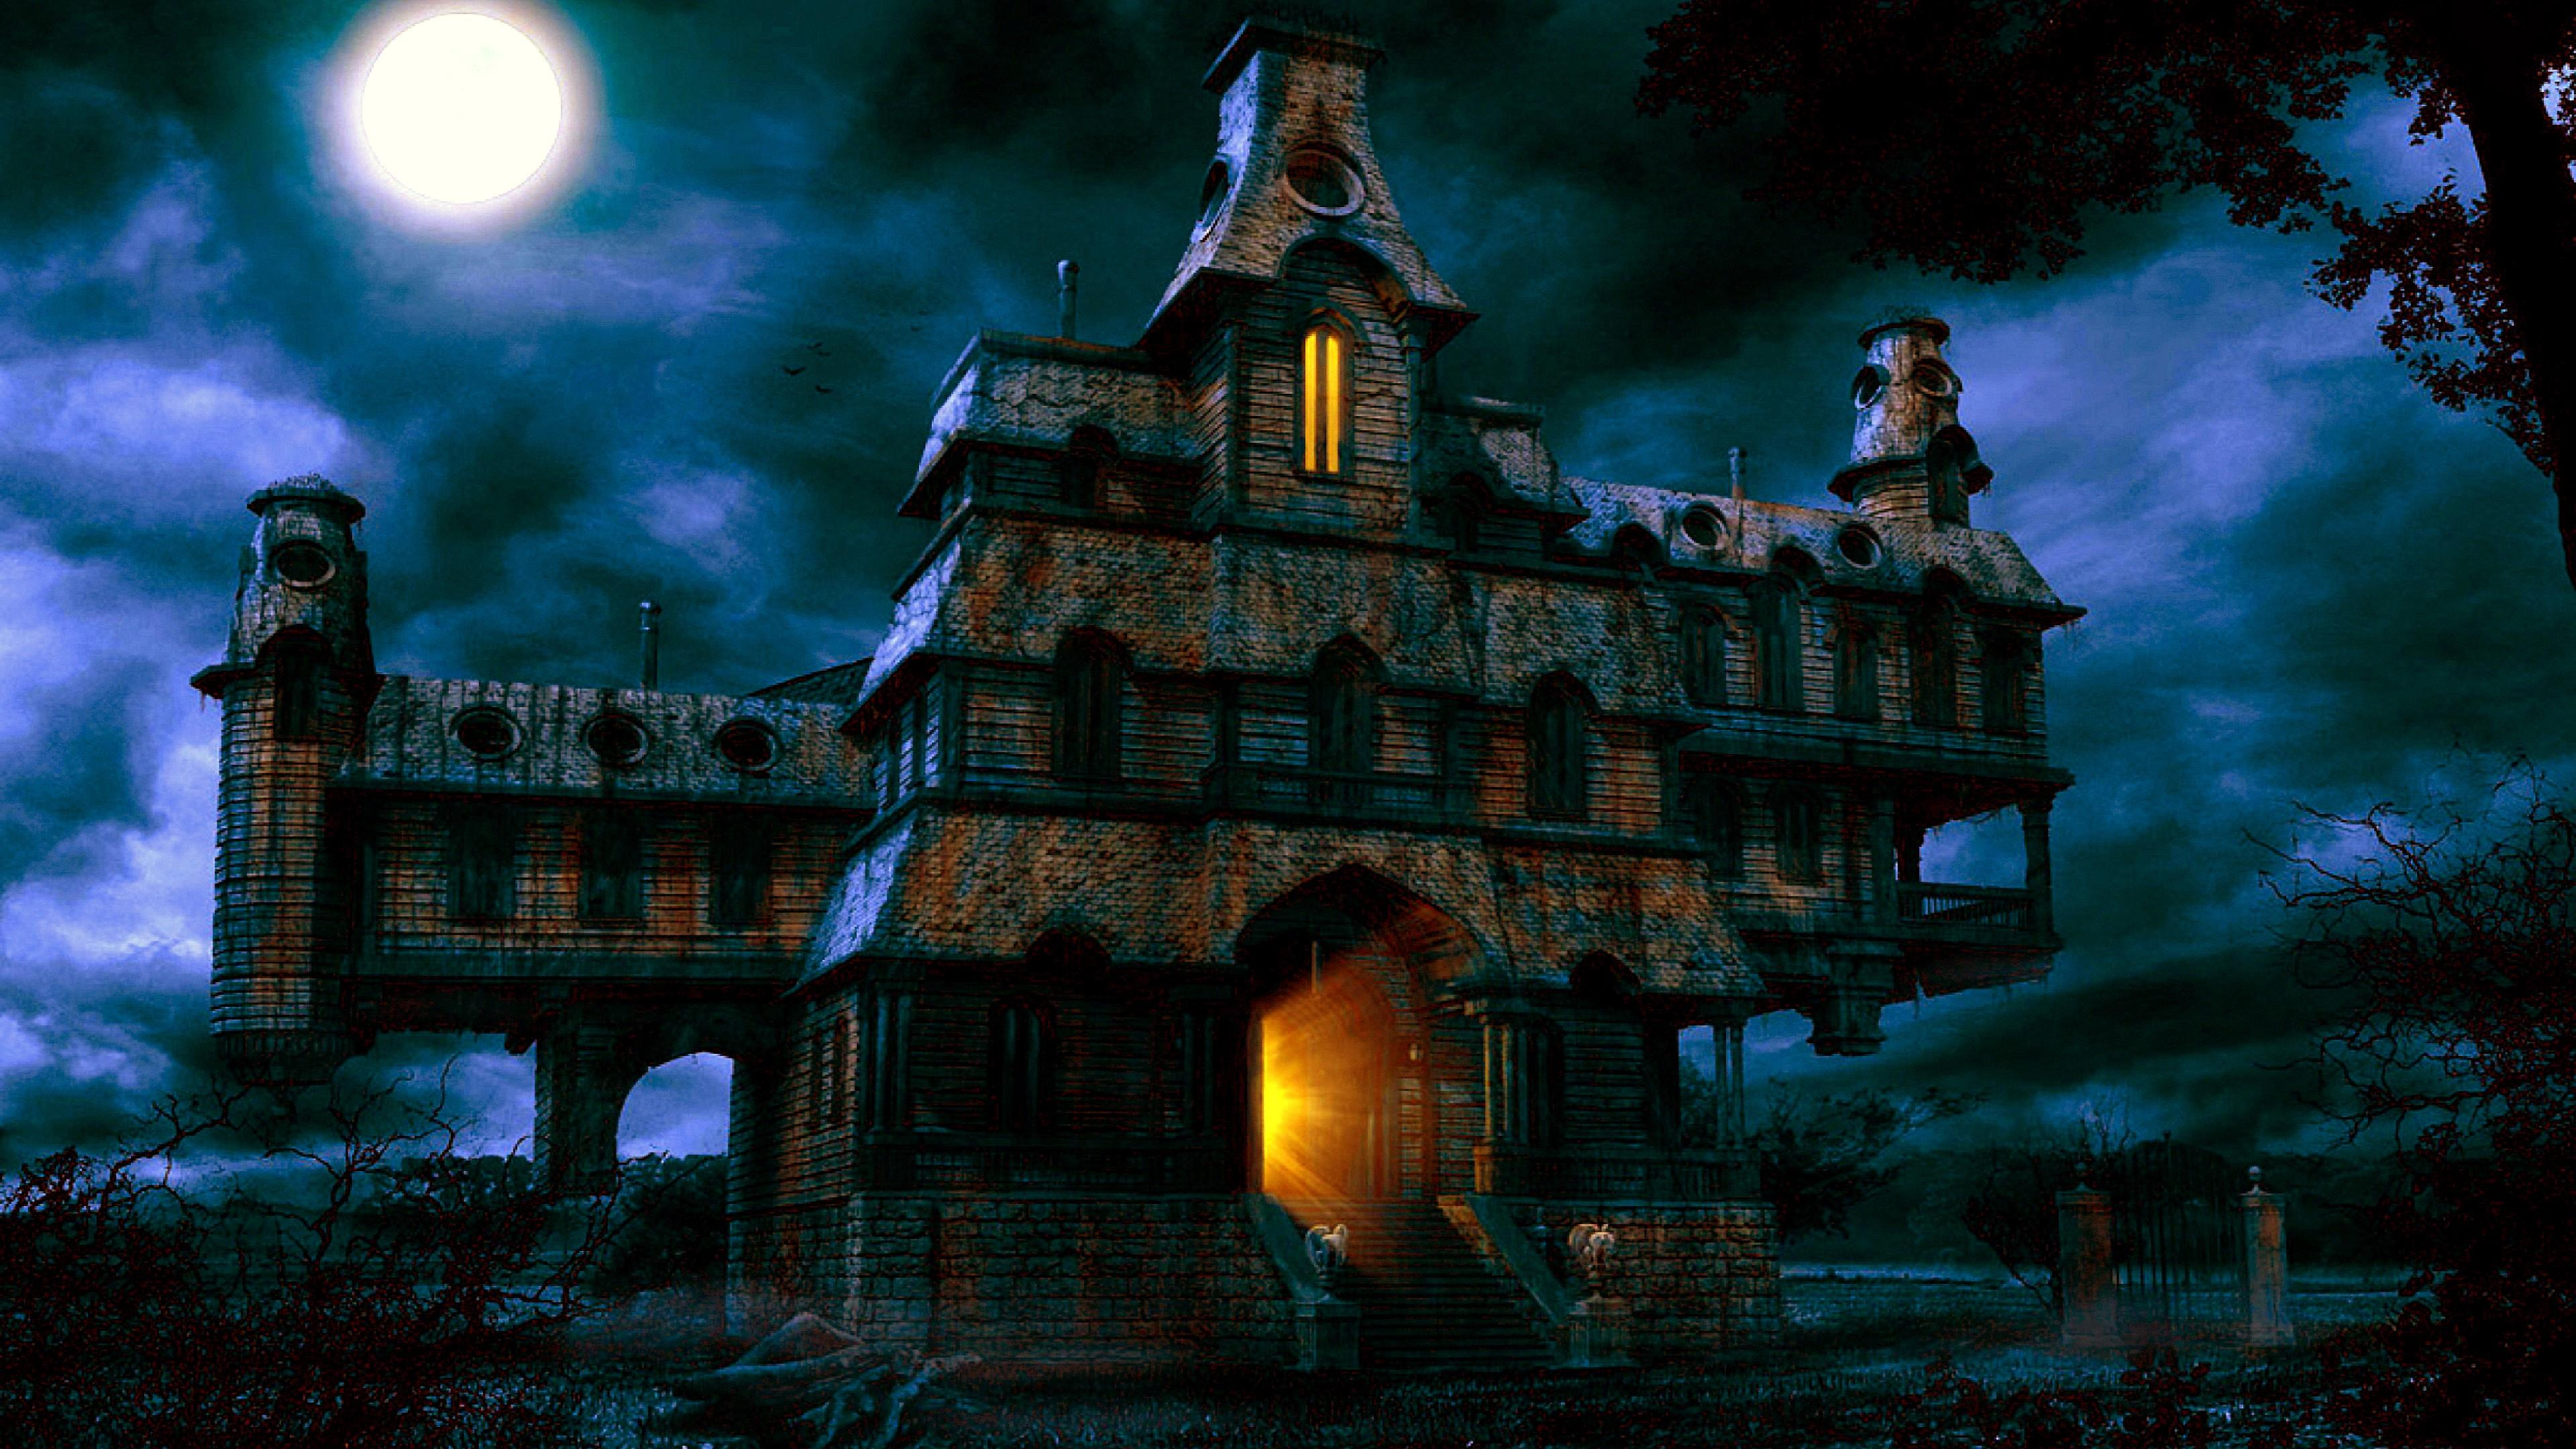 4K Haunted House 3840x2160 black,blue Photos and Wallpapers